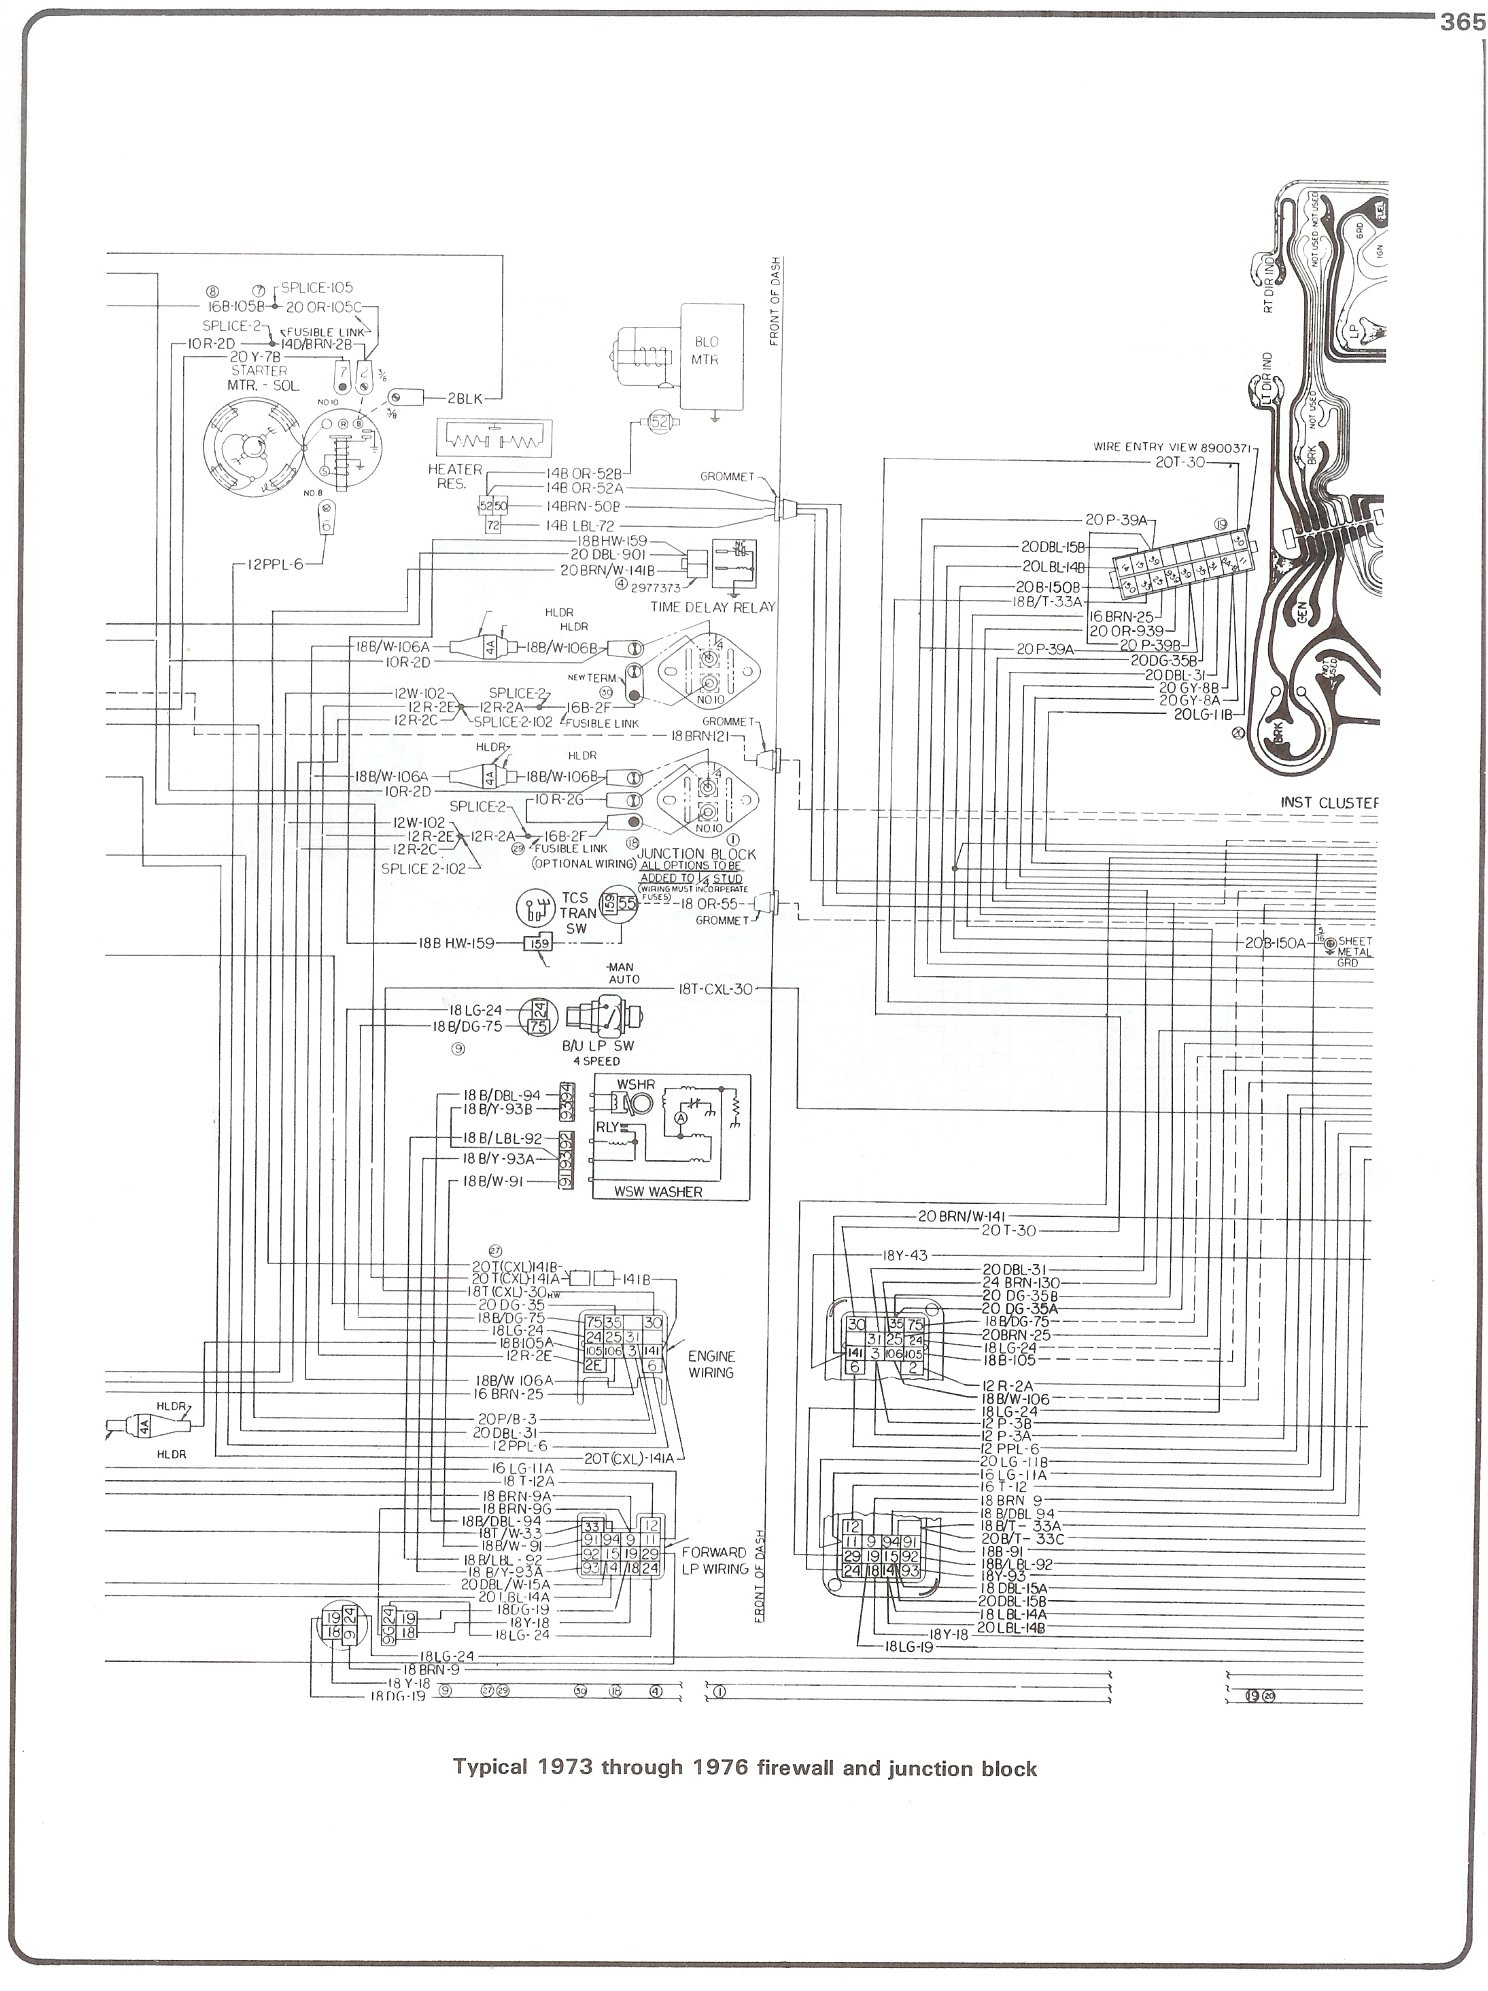 78 gmc wiring diagram schematics wiring diagrams u2022 rh hokispokisrecords com